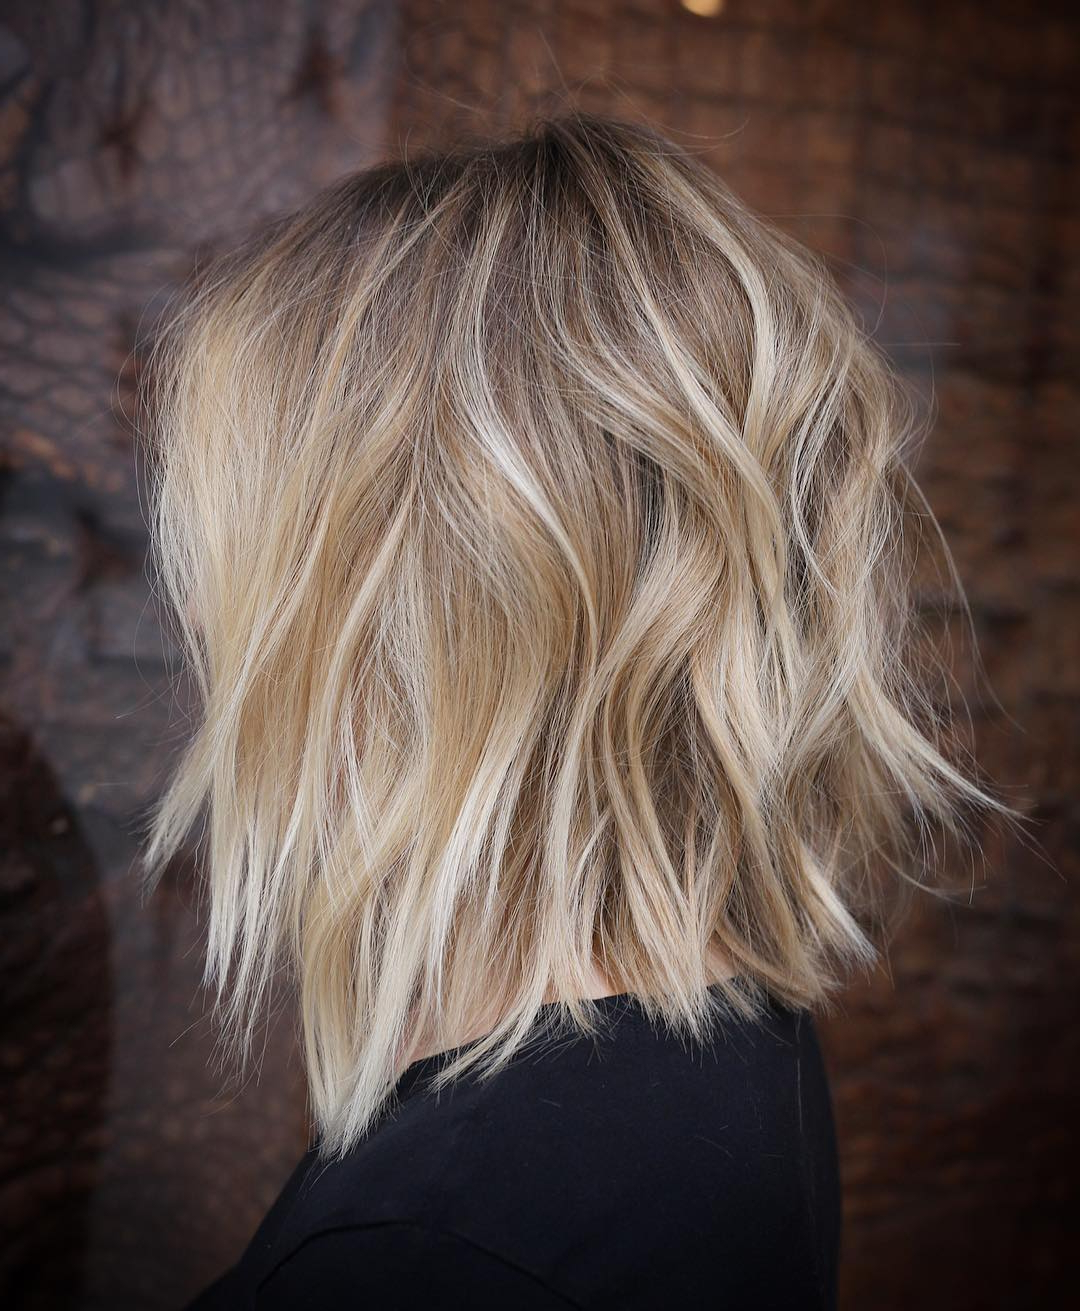 2017 Thick Feathered Blonde Lob Hairstyles With Regard To 10 Stylish Lob Hairstyle Ideas, Best Shoulder Length Hair (View 1 of 20)